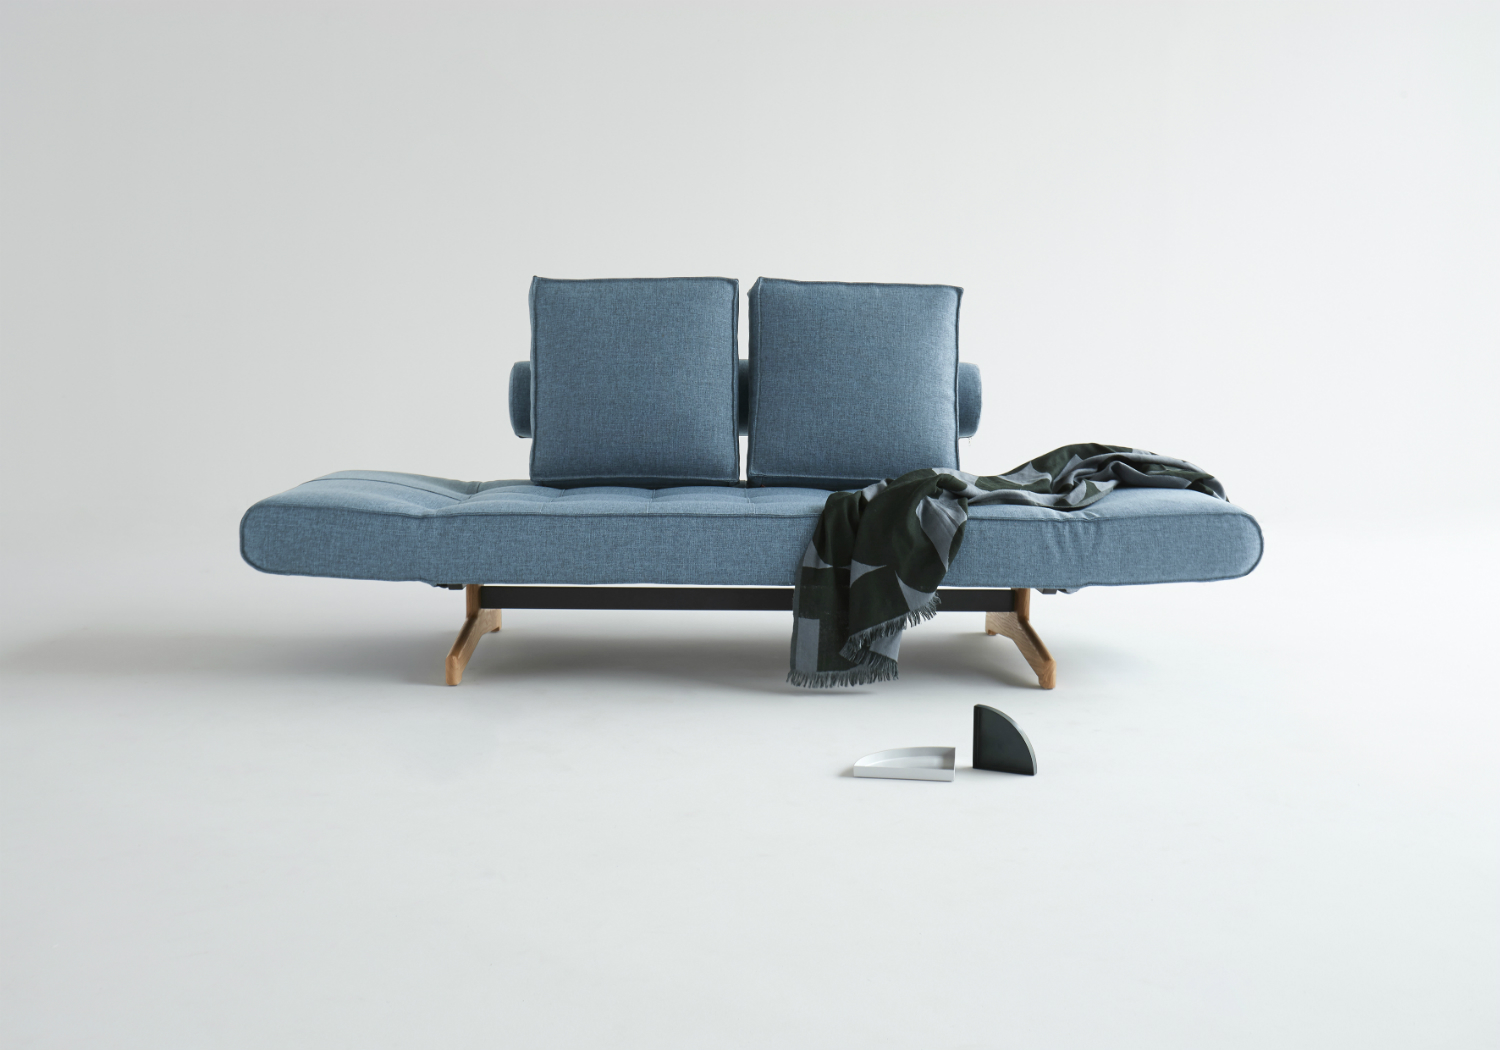 a blue danish sofa bed on a white background